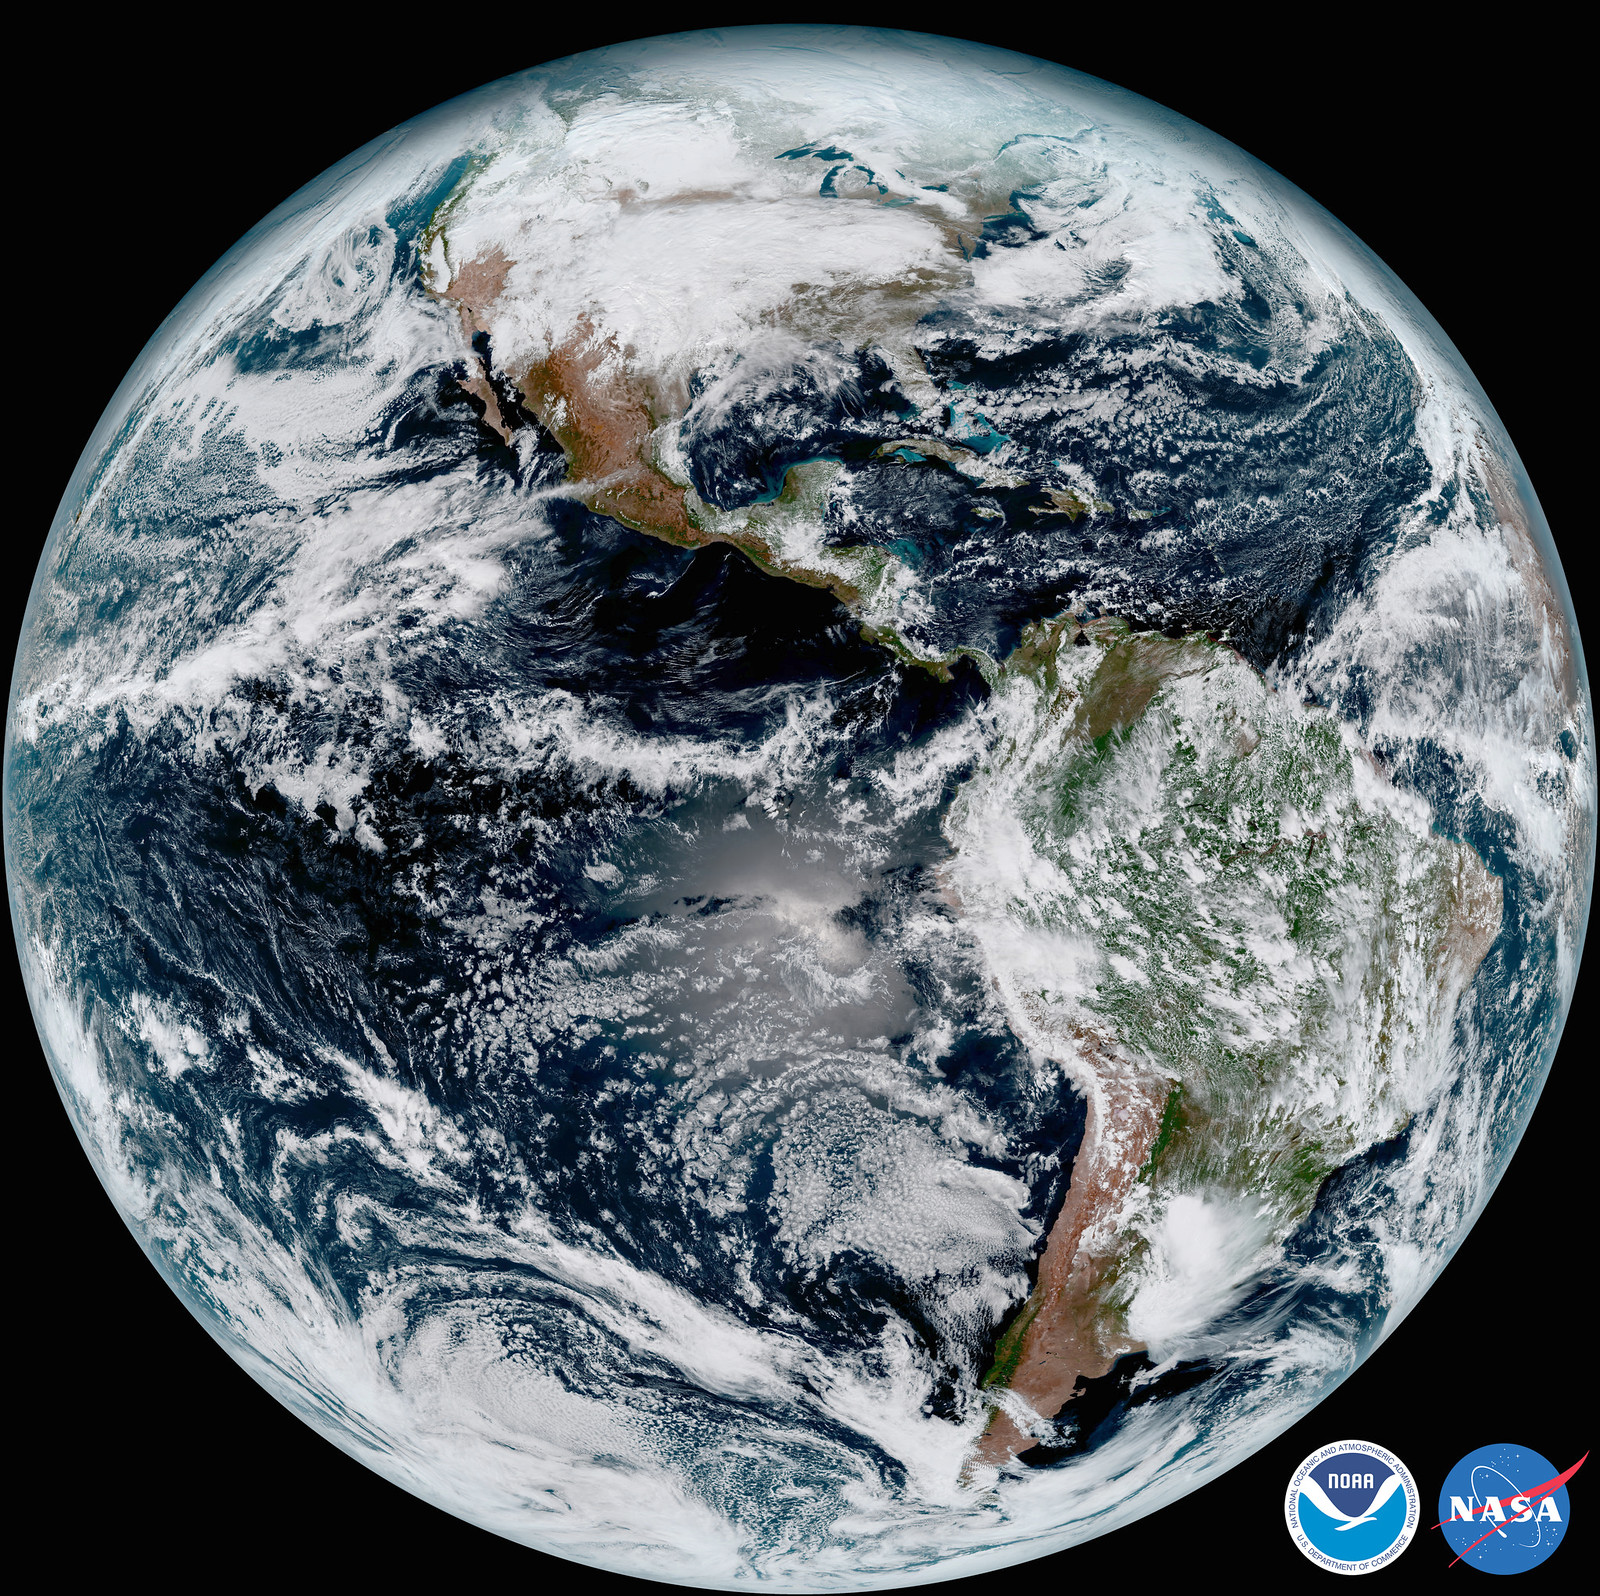 GOES-16 image of the Earth